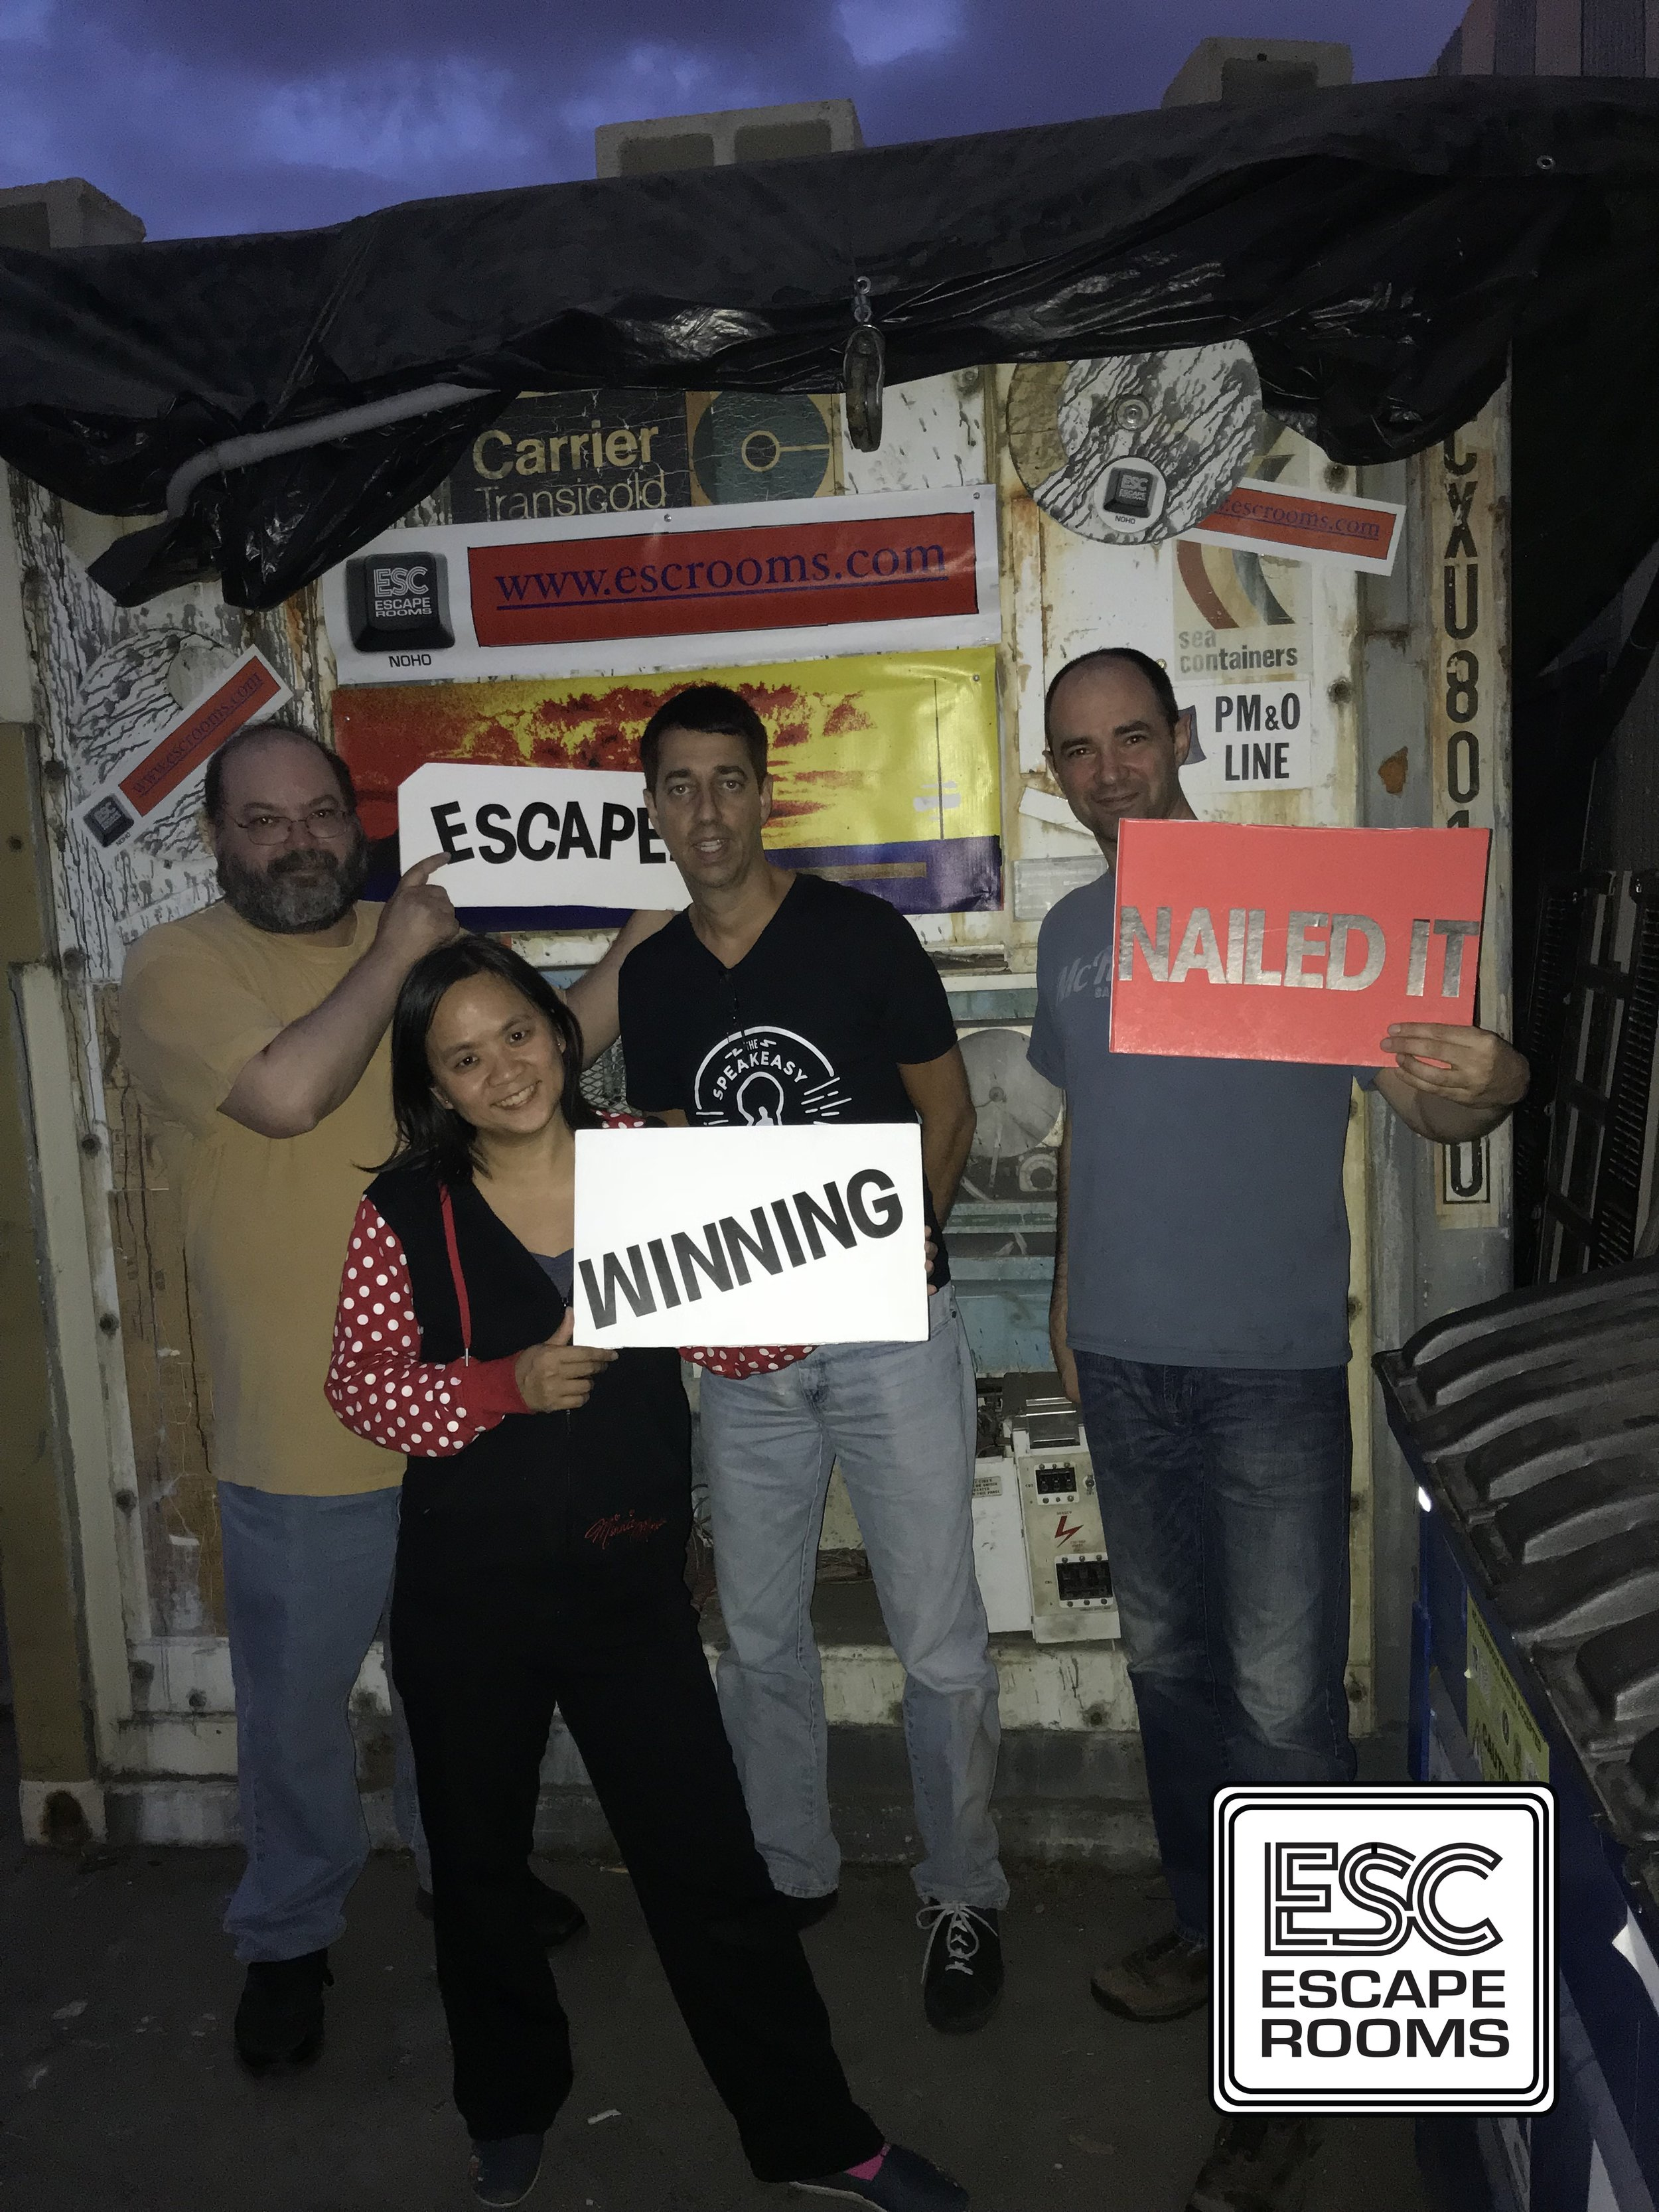 team-scytale-esc-escape-rooms.jpeg